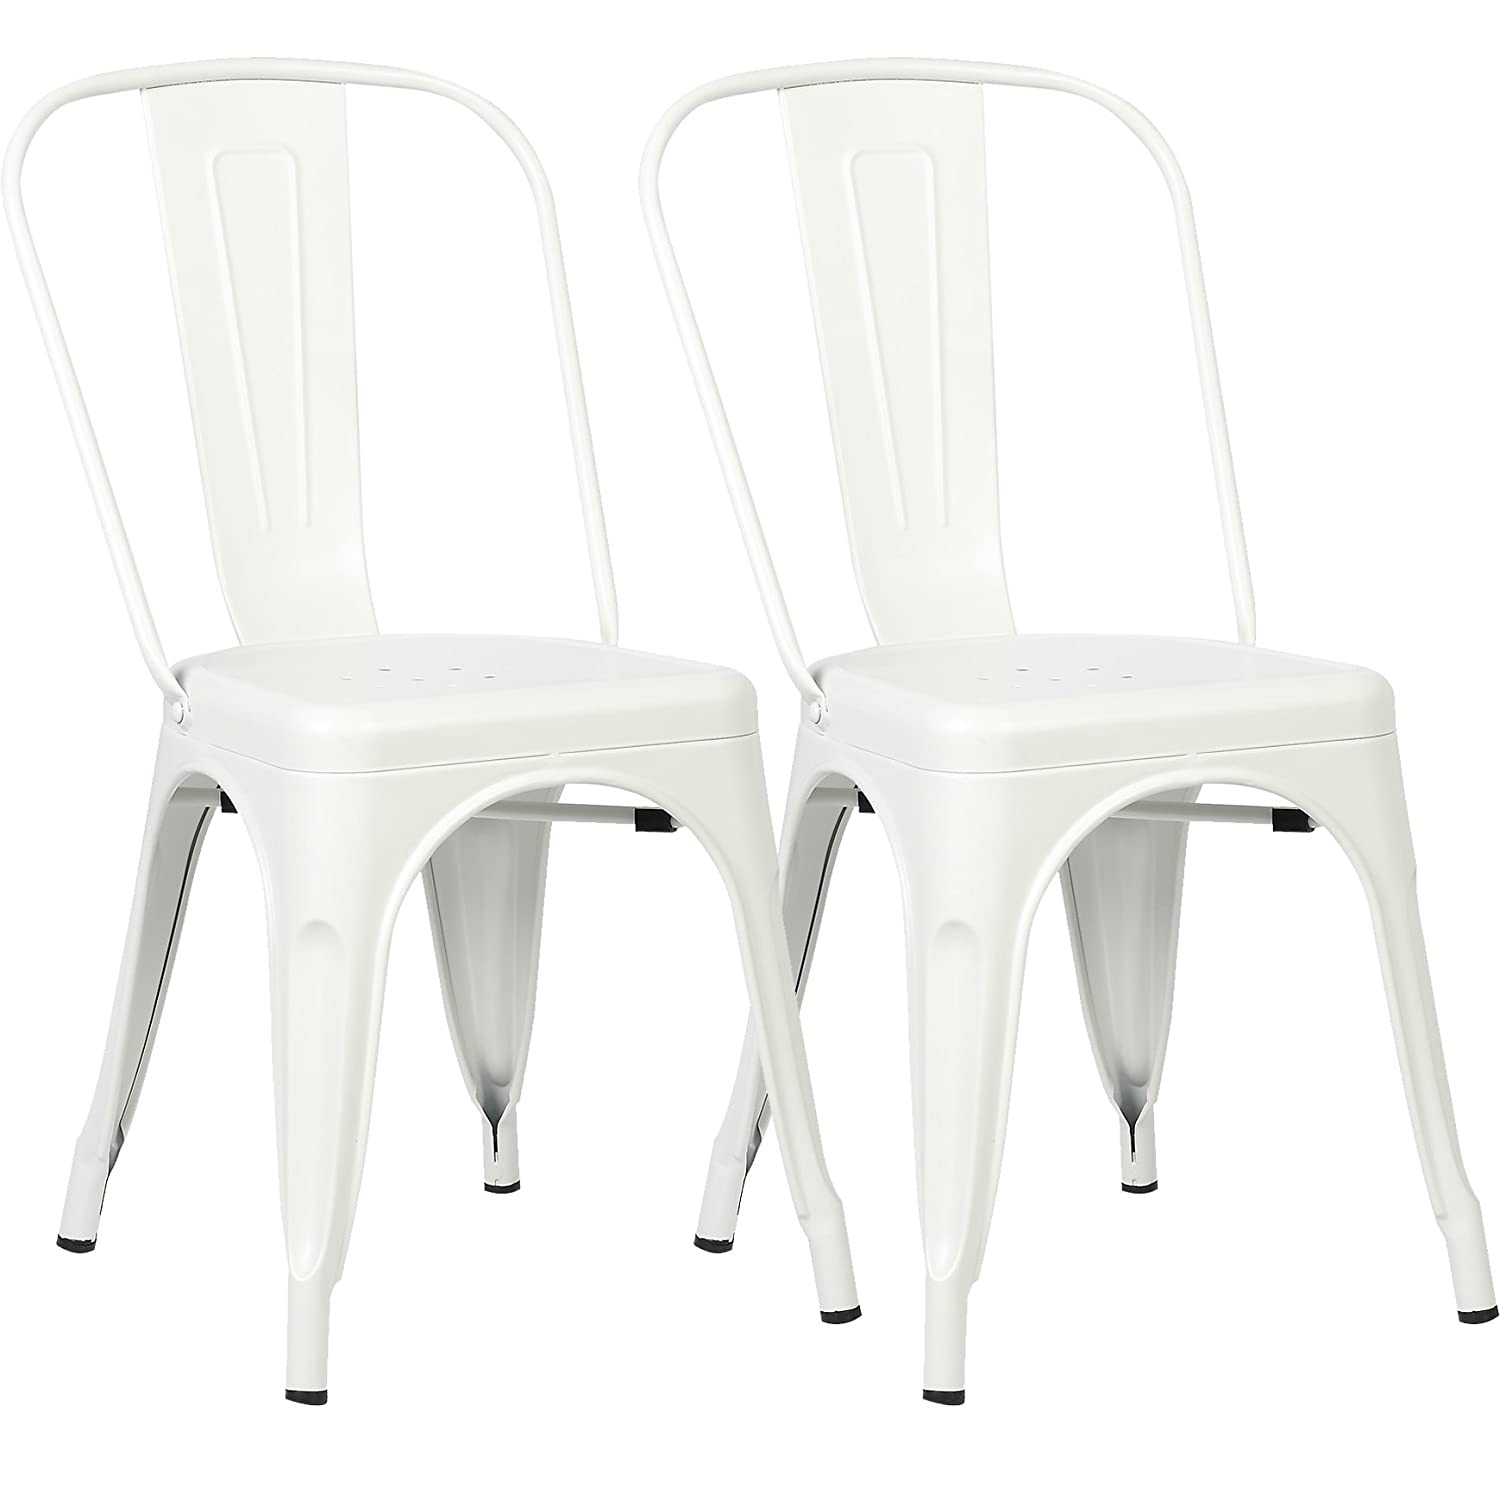 Poly and Bark Trattoria Kitchen and Dining Metal Side Chair in White (Set of 2)